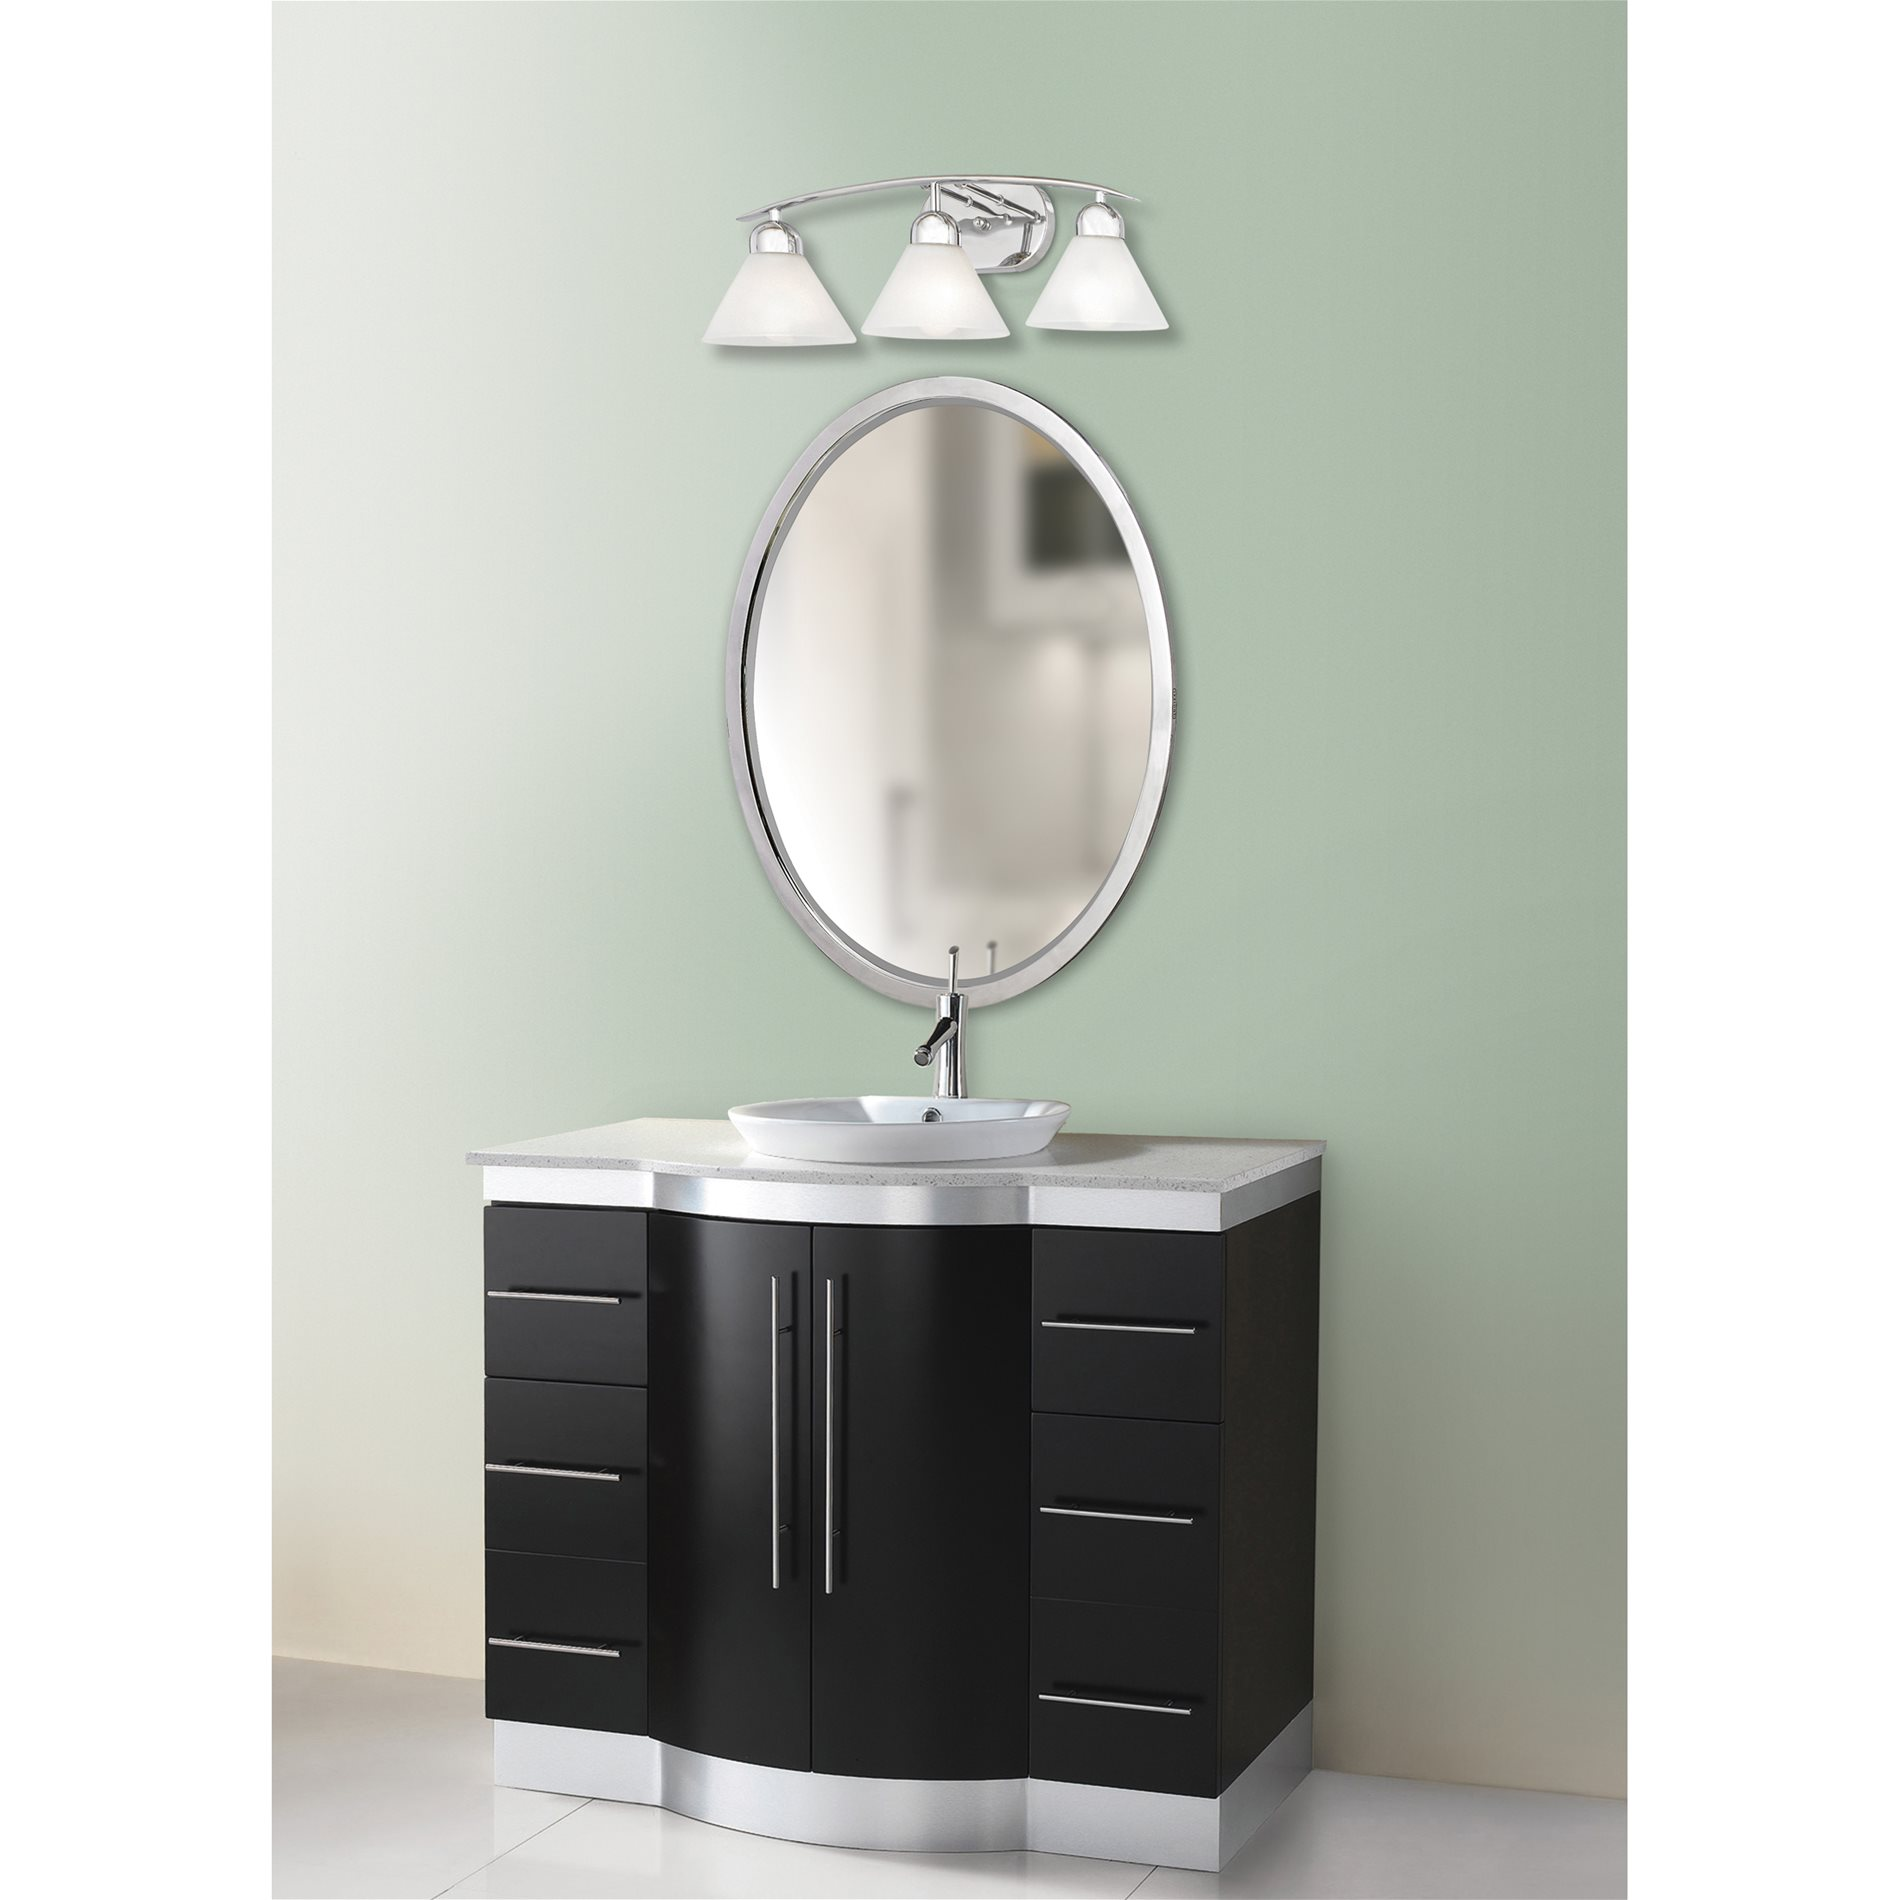 Quoizel Di8503c Demitri Modern Contemporary Bathroom Vanity Light Qz Di8503c